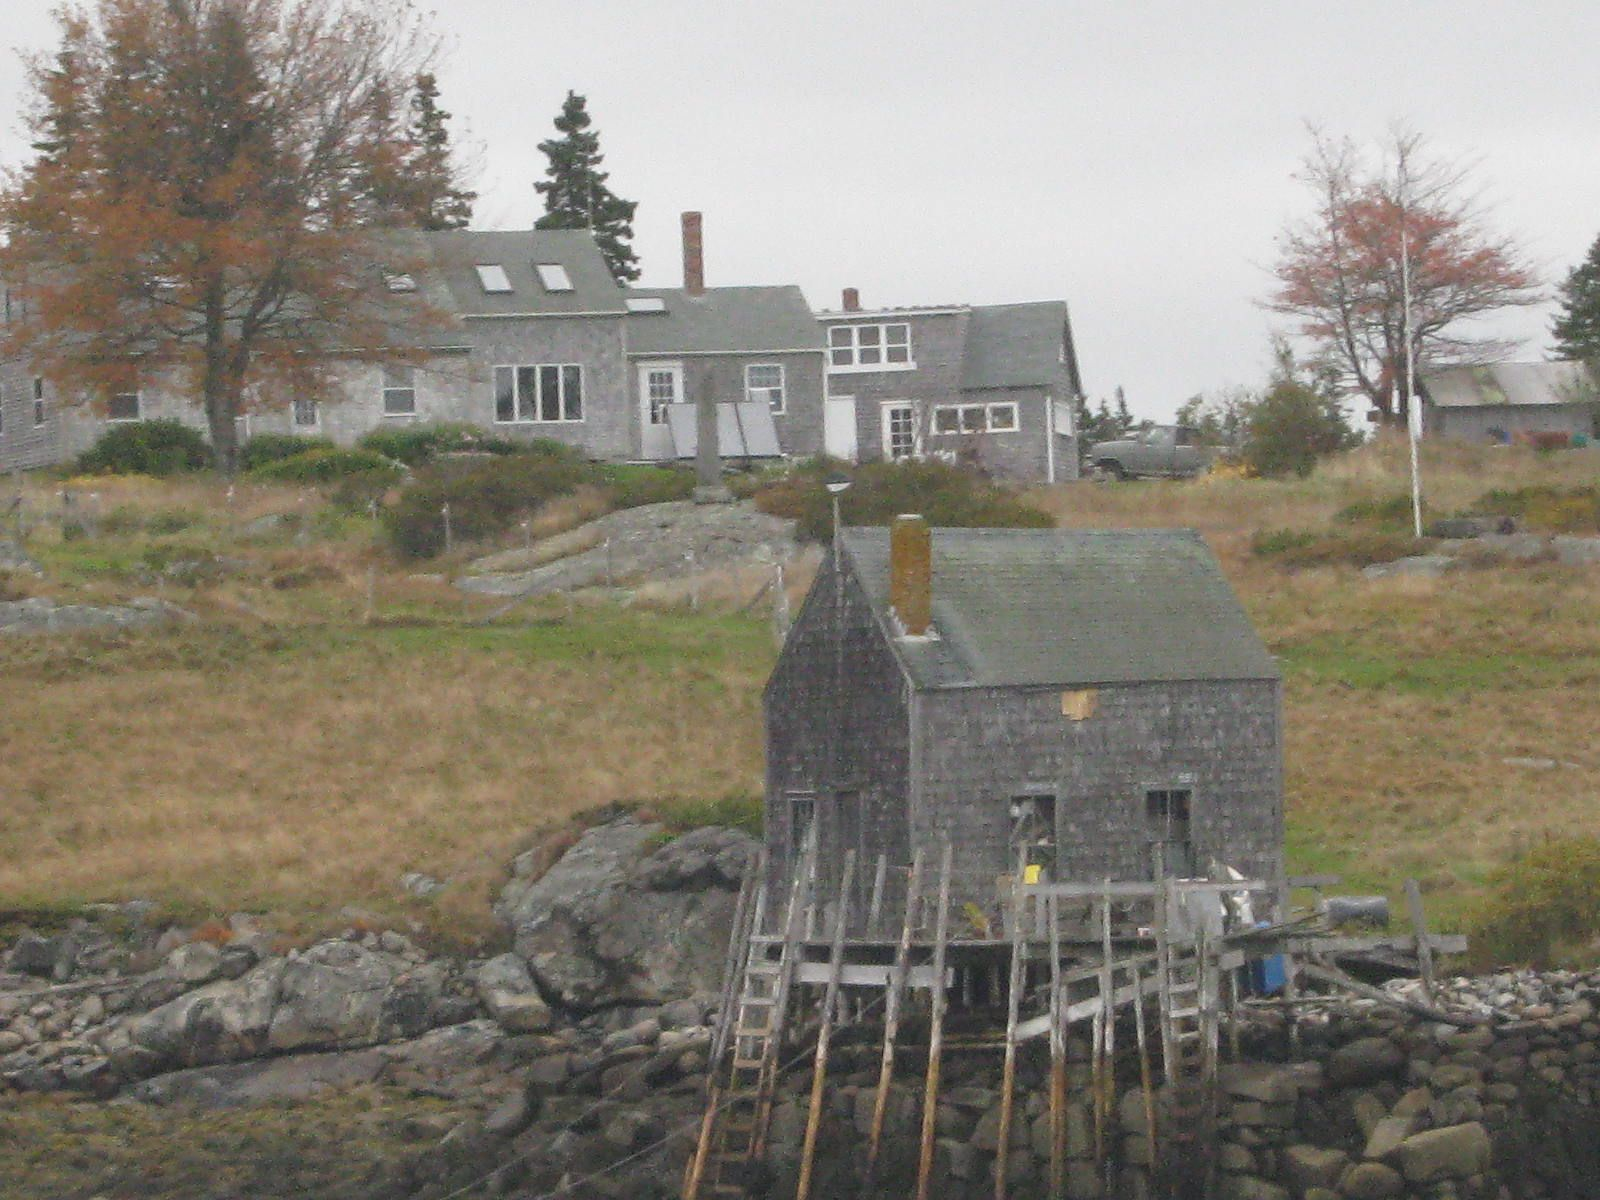 Maine Oceanfront Home on the Island of Vinalhaven in Maine's Penobscot Bay